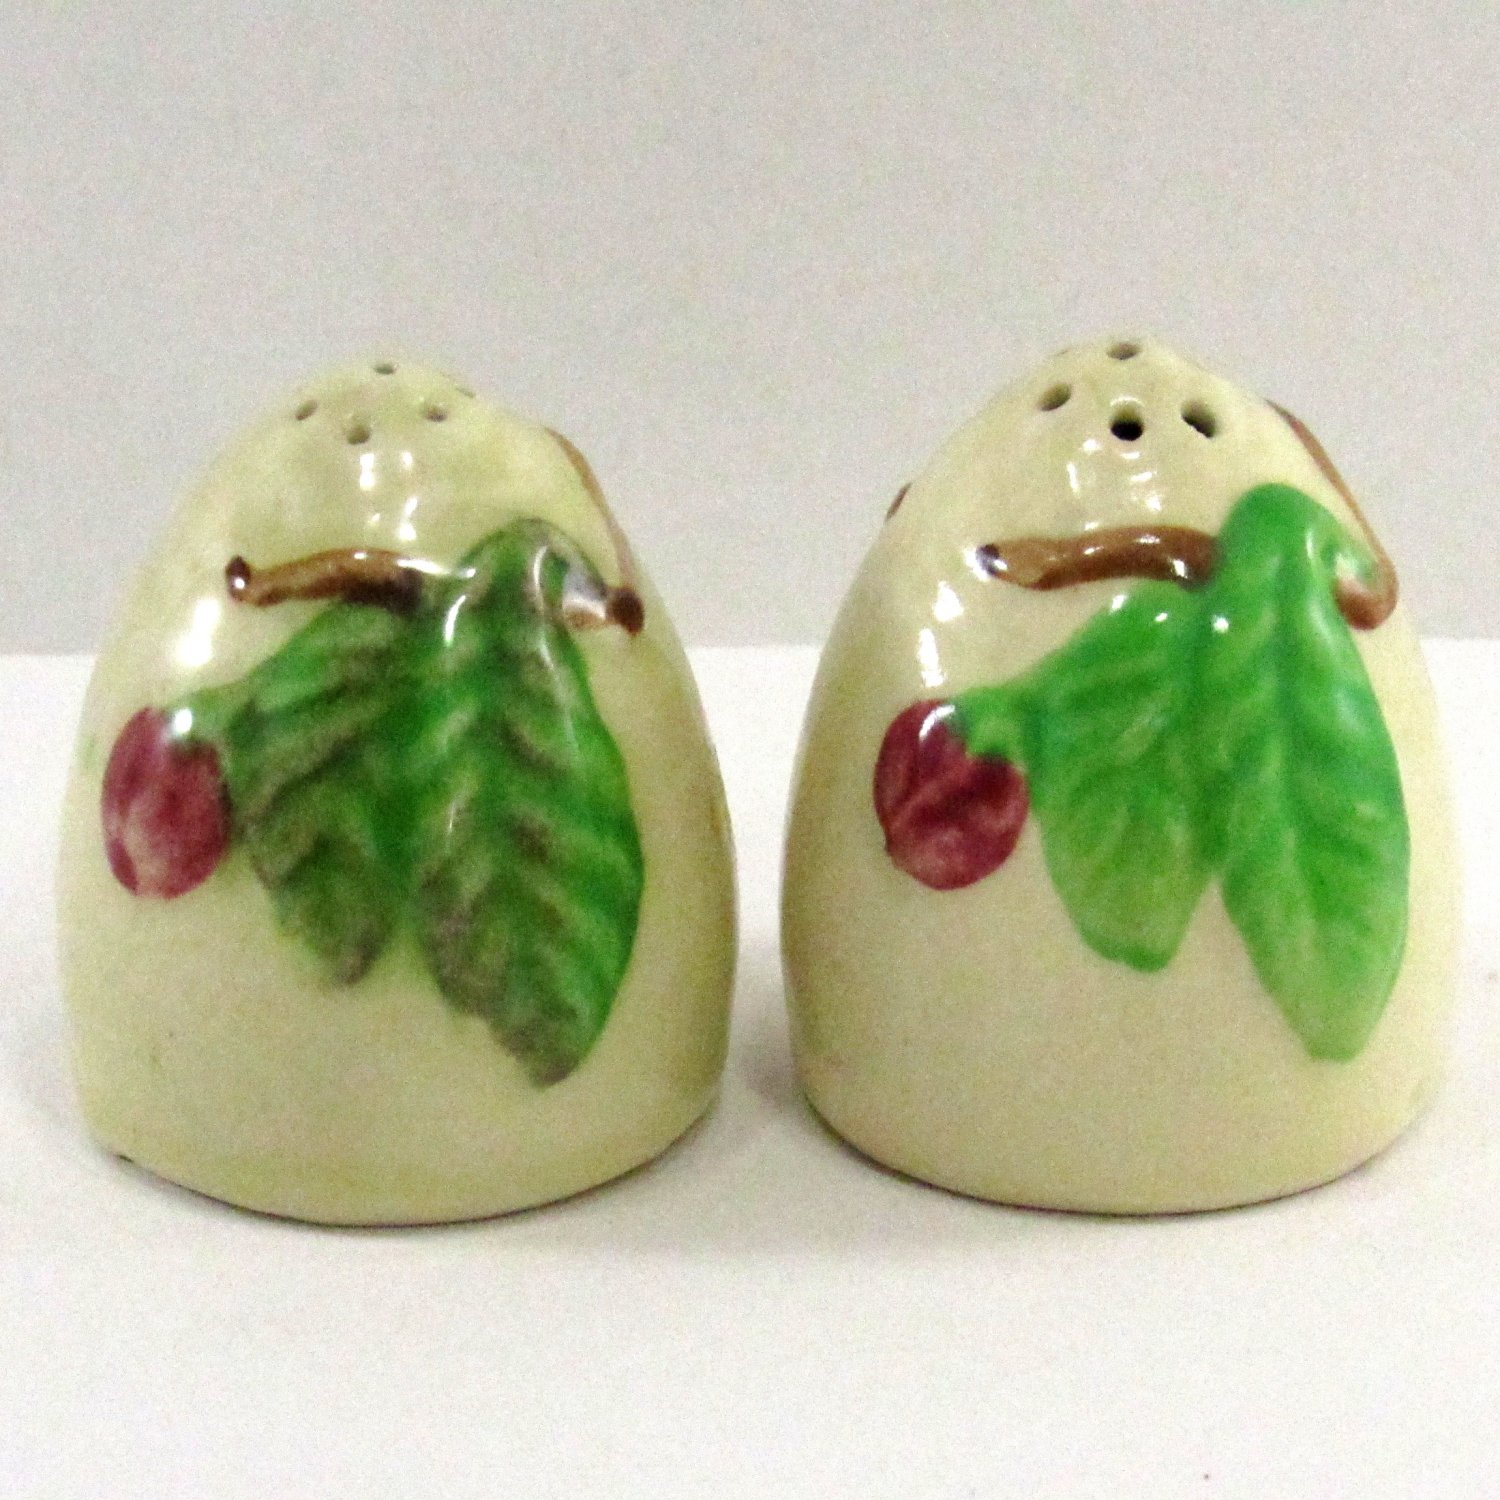 Egg Shape Salt and Pepper Shakers Made in Japan 1 3/4 inches beige color with cork stoppers